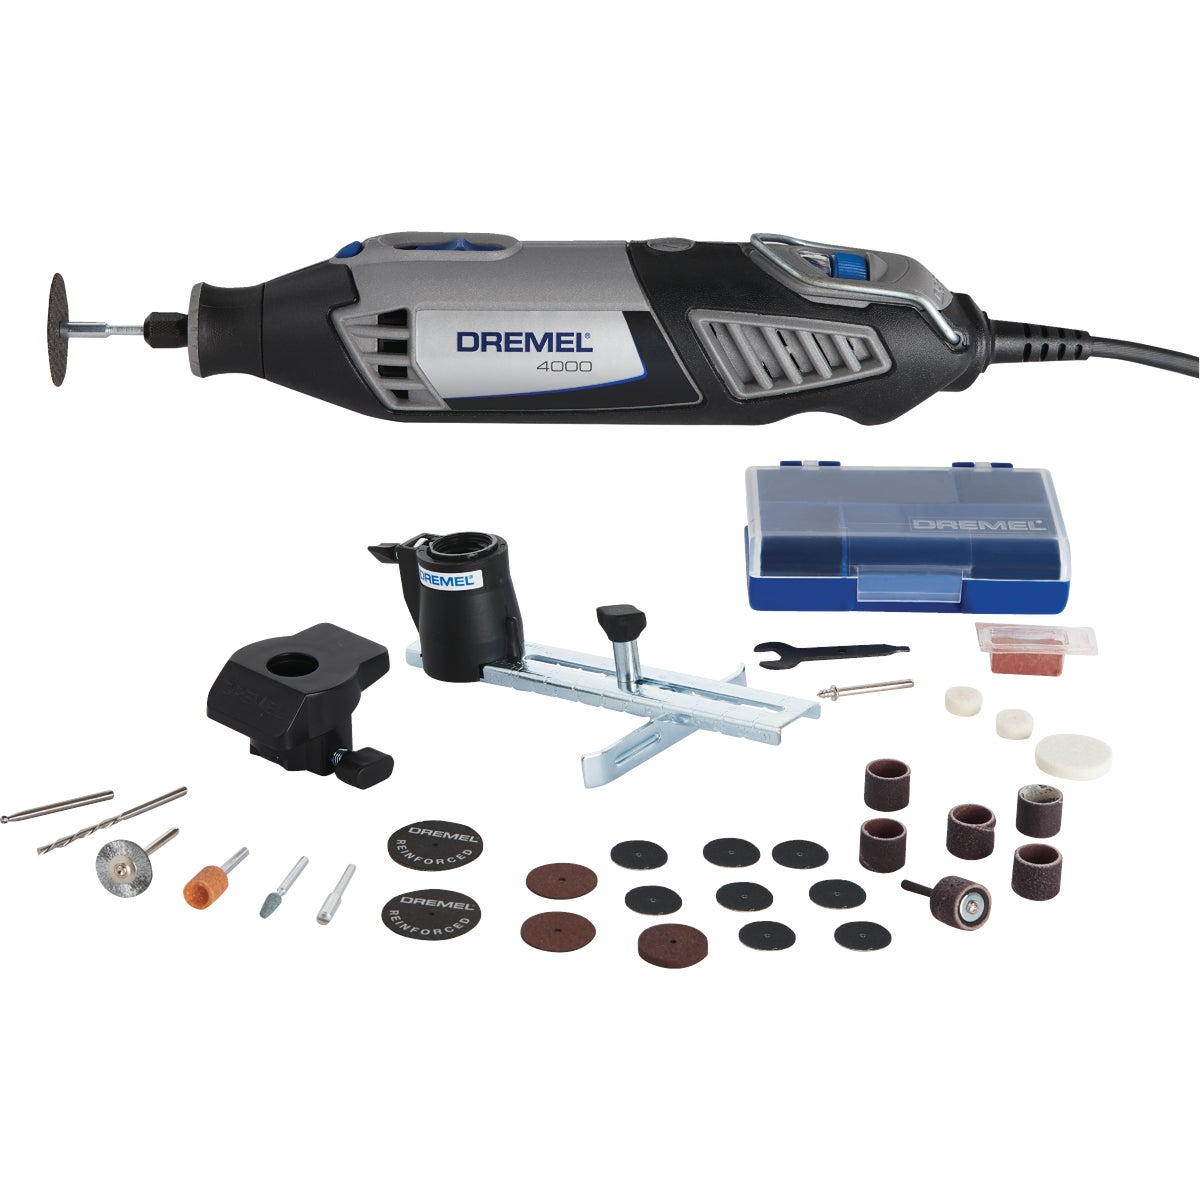 XPR ROTARY TOOL - 4000-2/30 by Dremel Mfg Co